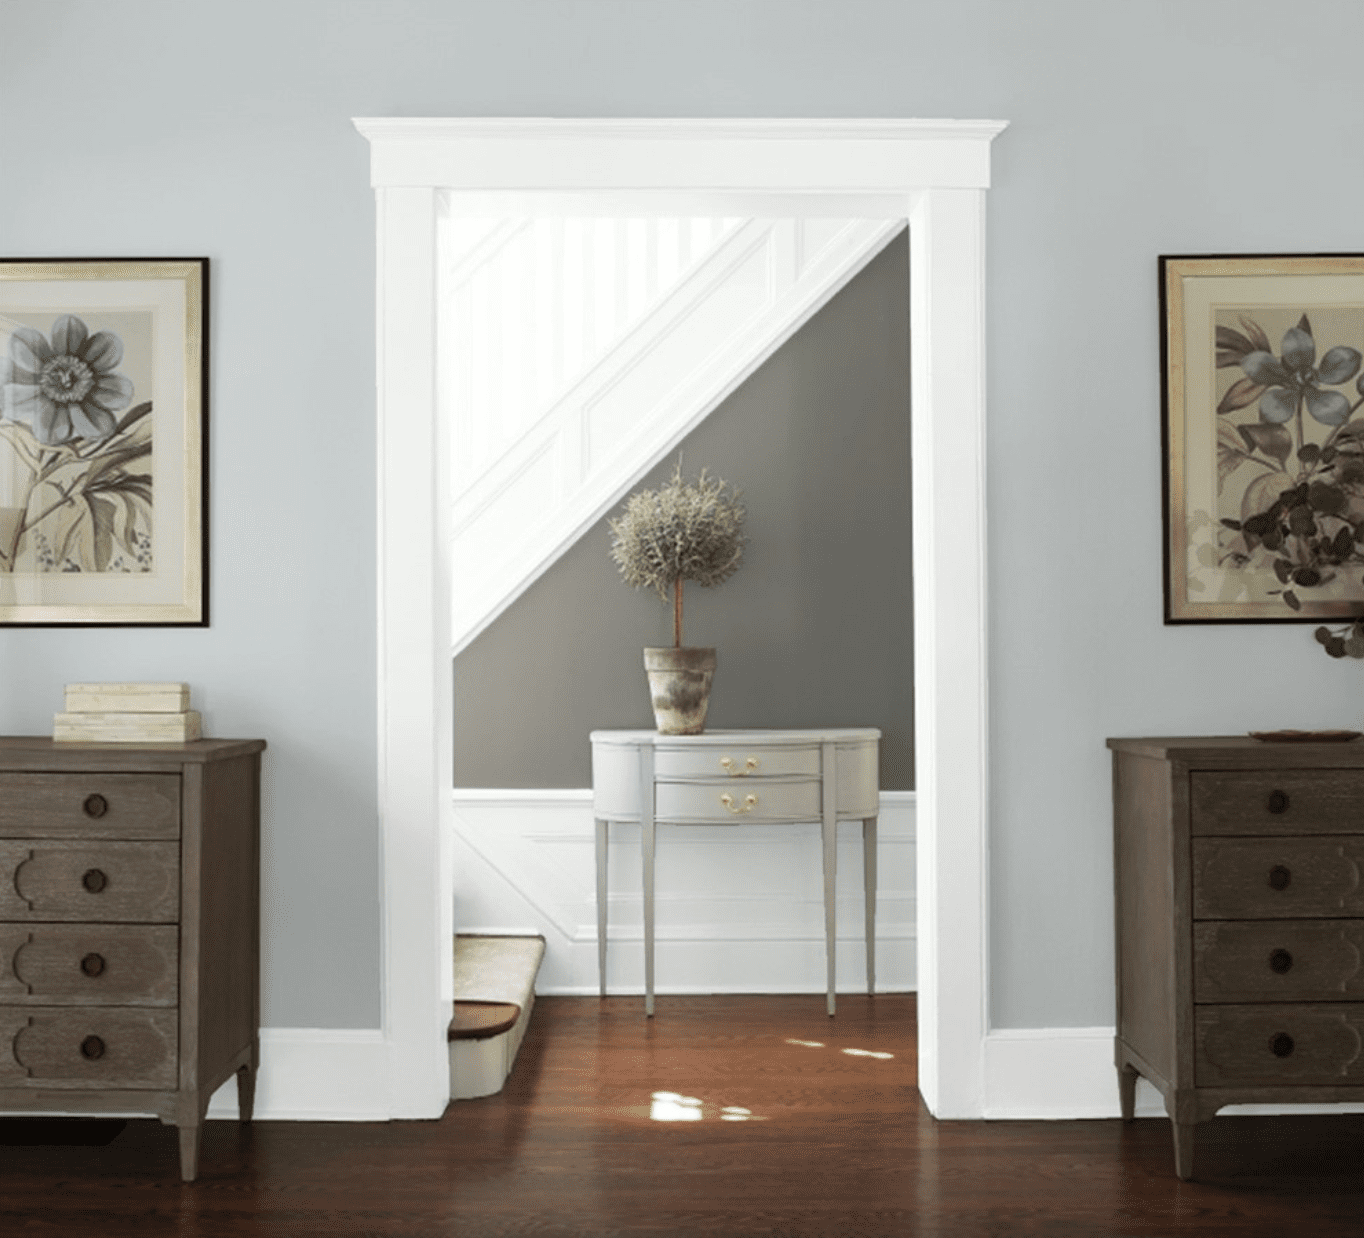 I Found the Perfect Neutral Paint Color—And It's Not White